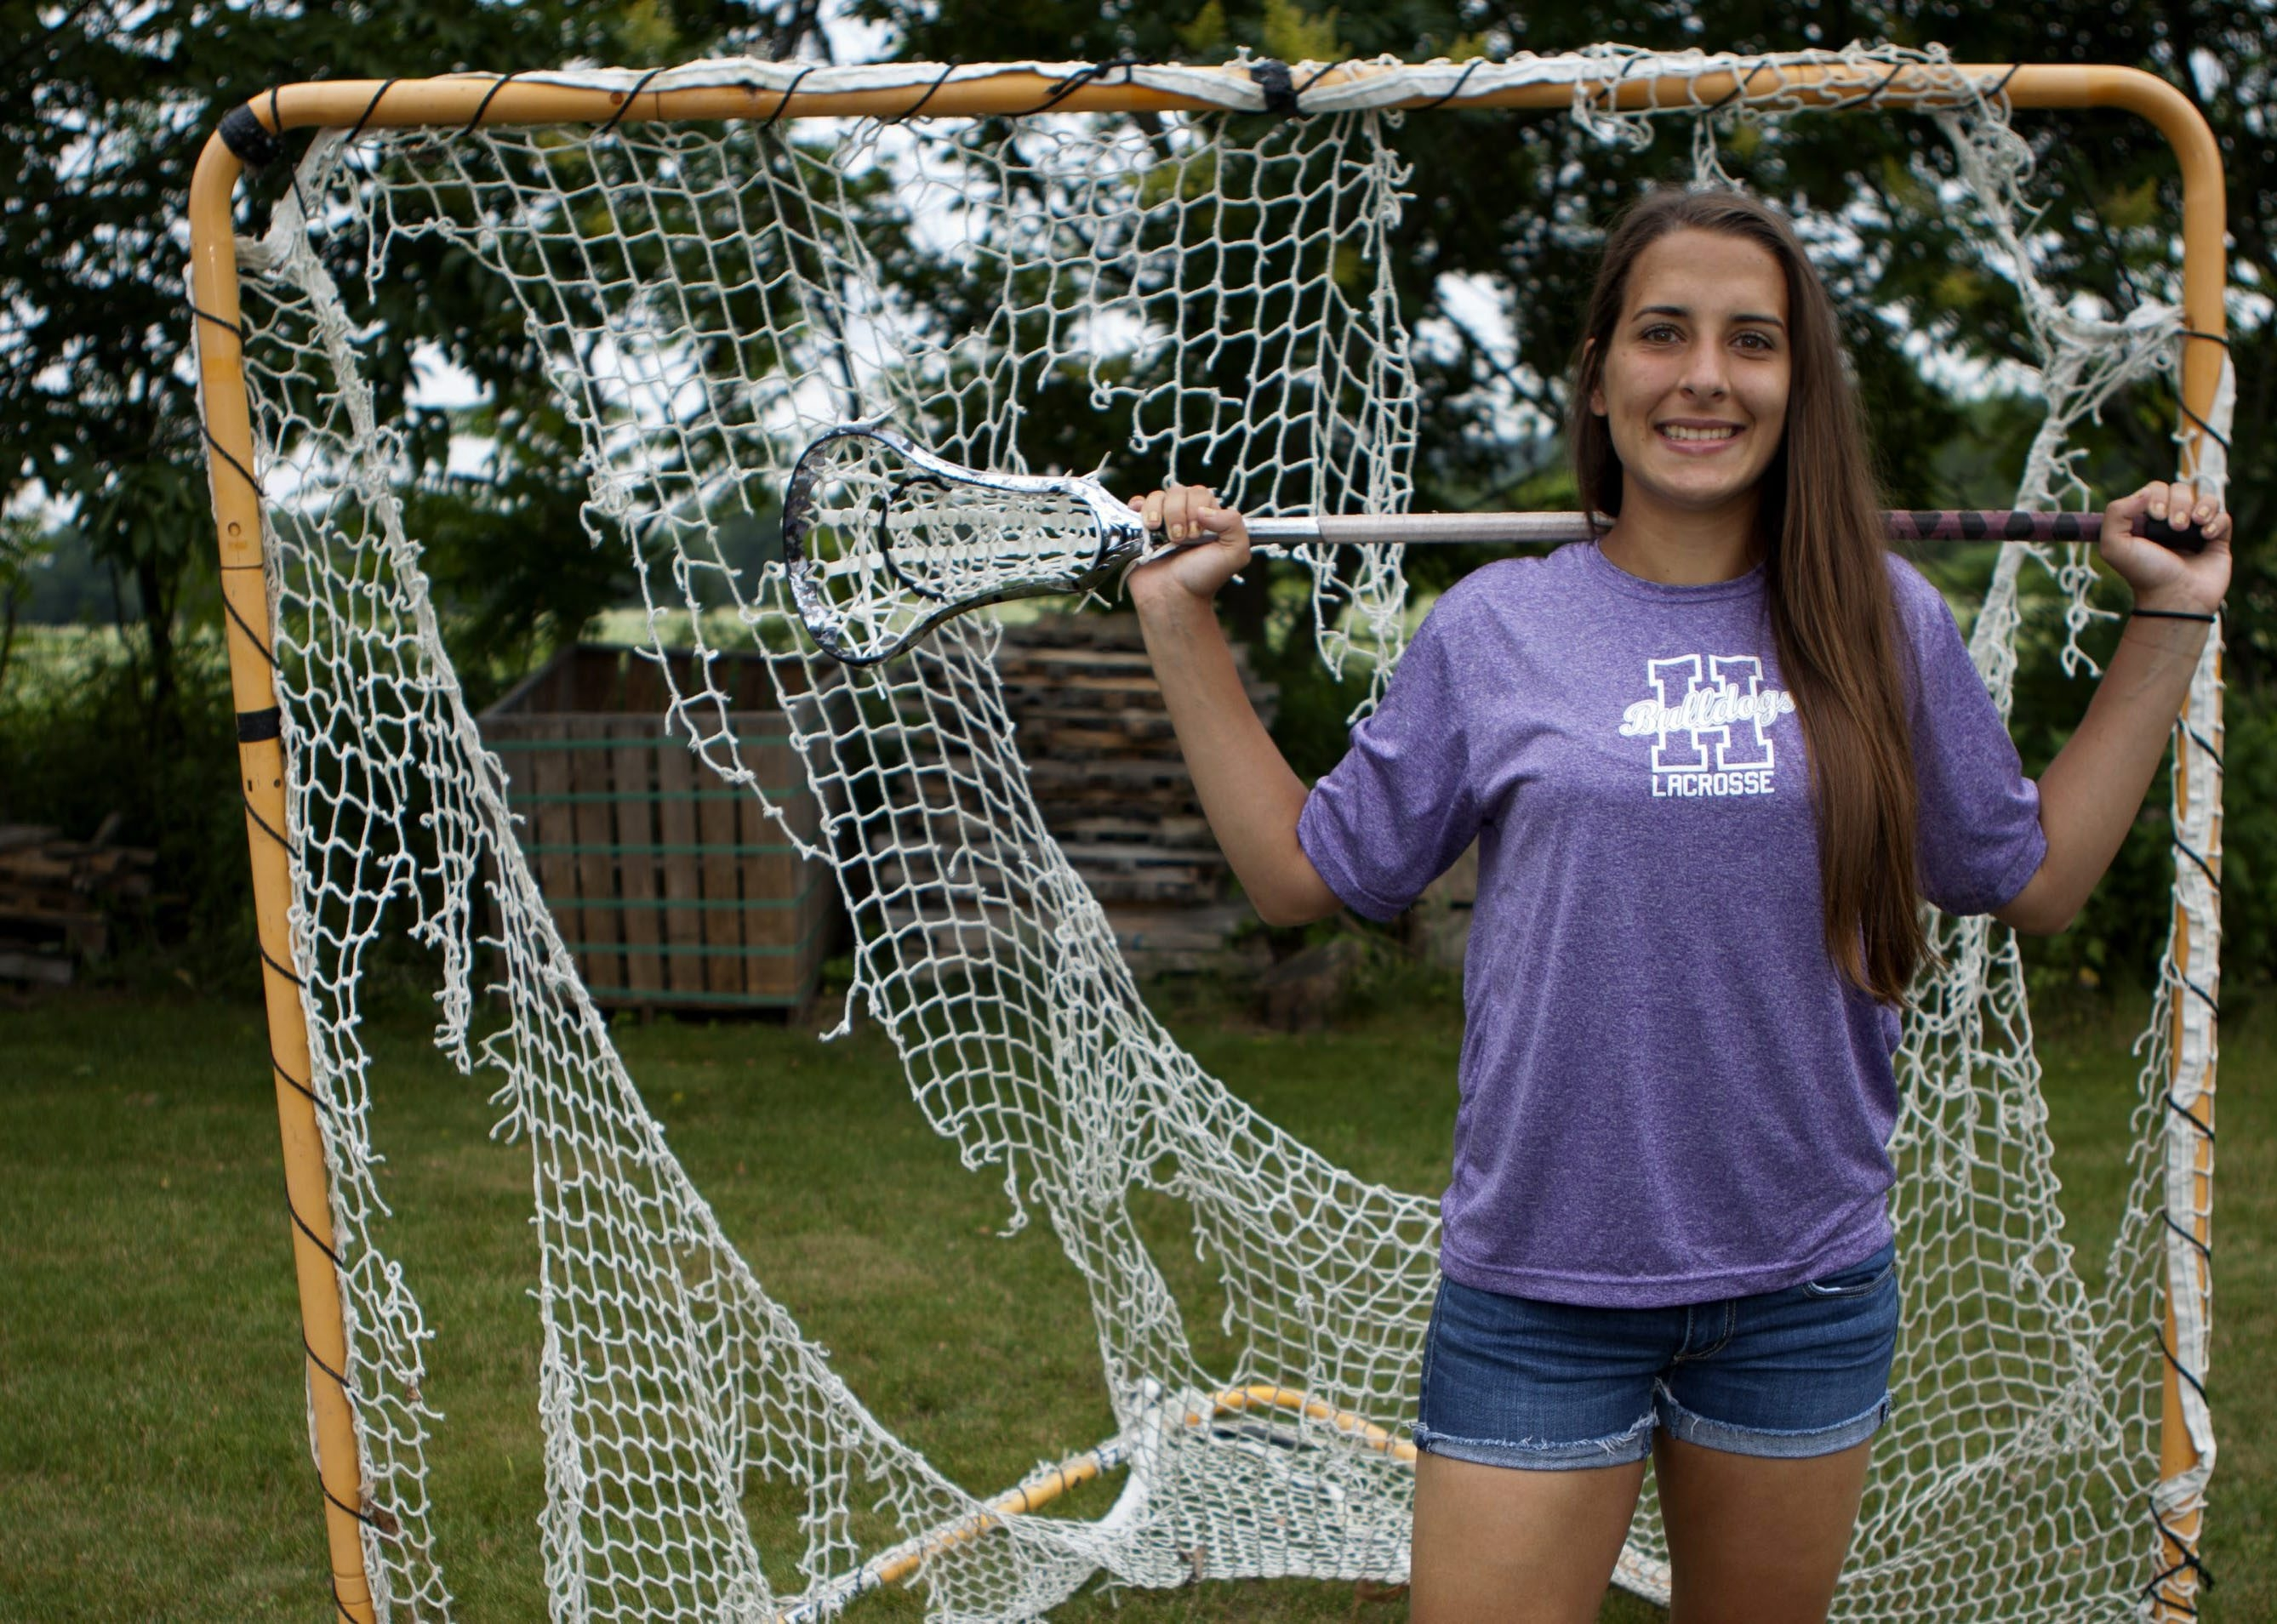 Megan Mikolajek of Hamburg is this year's winner of the Tom Borrelli Memorial Award as the best girls high school lacrosse senior in Western New York. (Matthew Masin / Buffalo News)